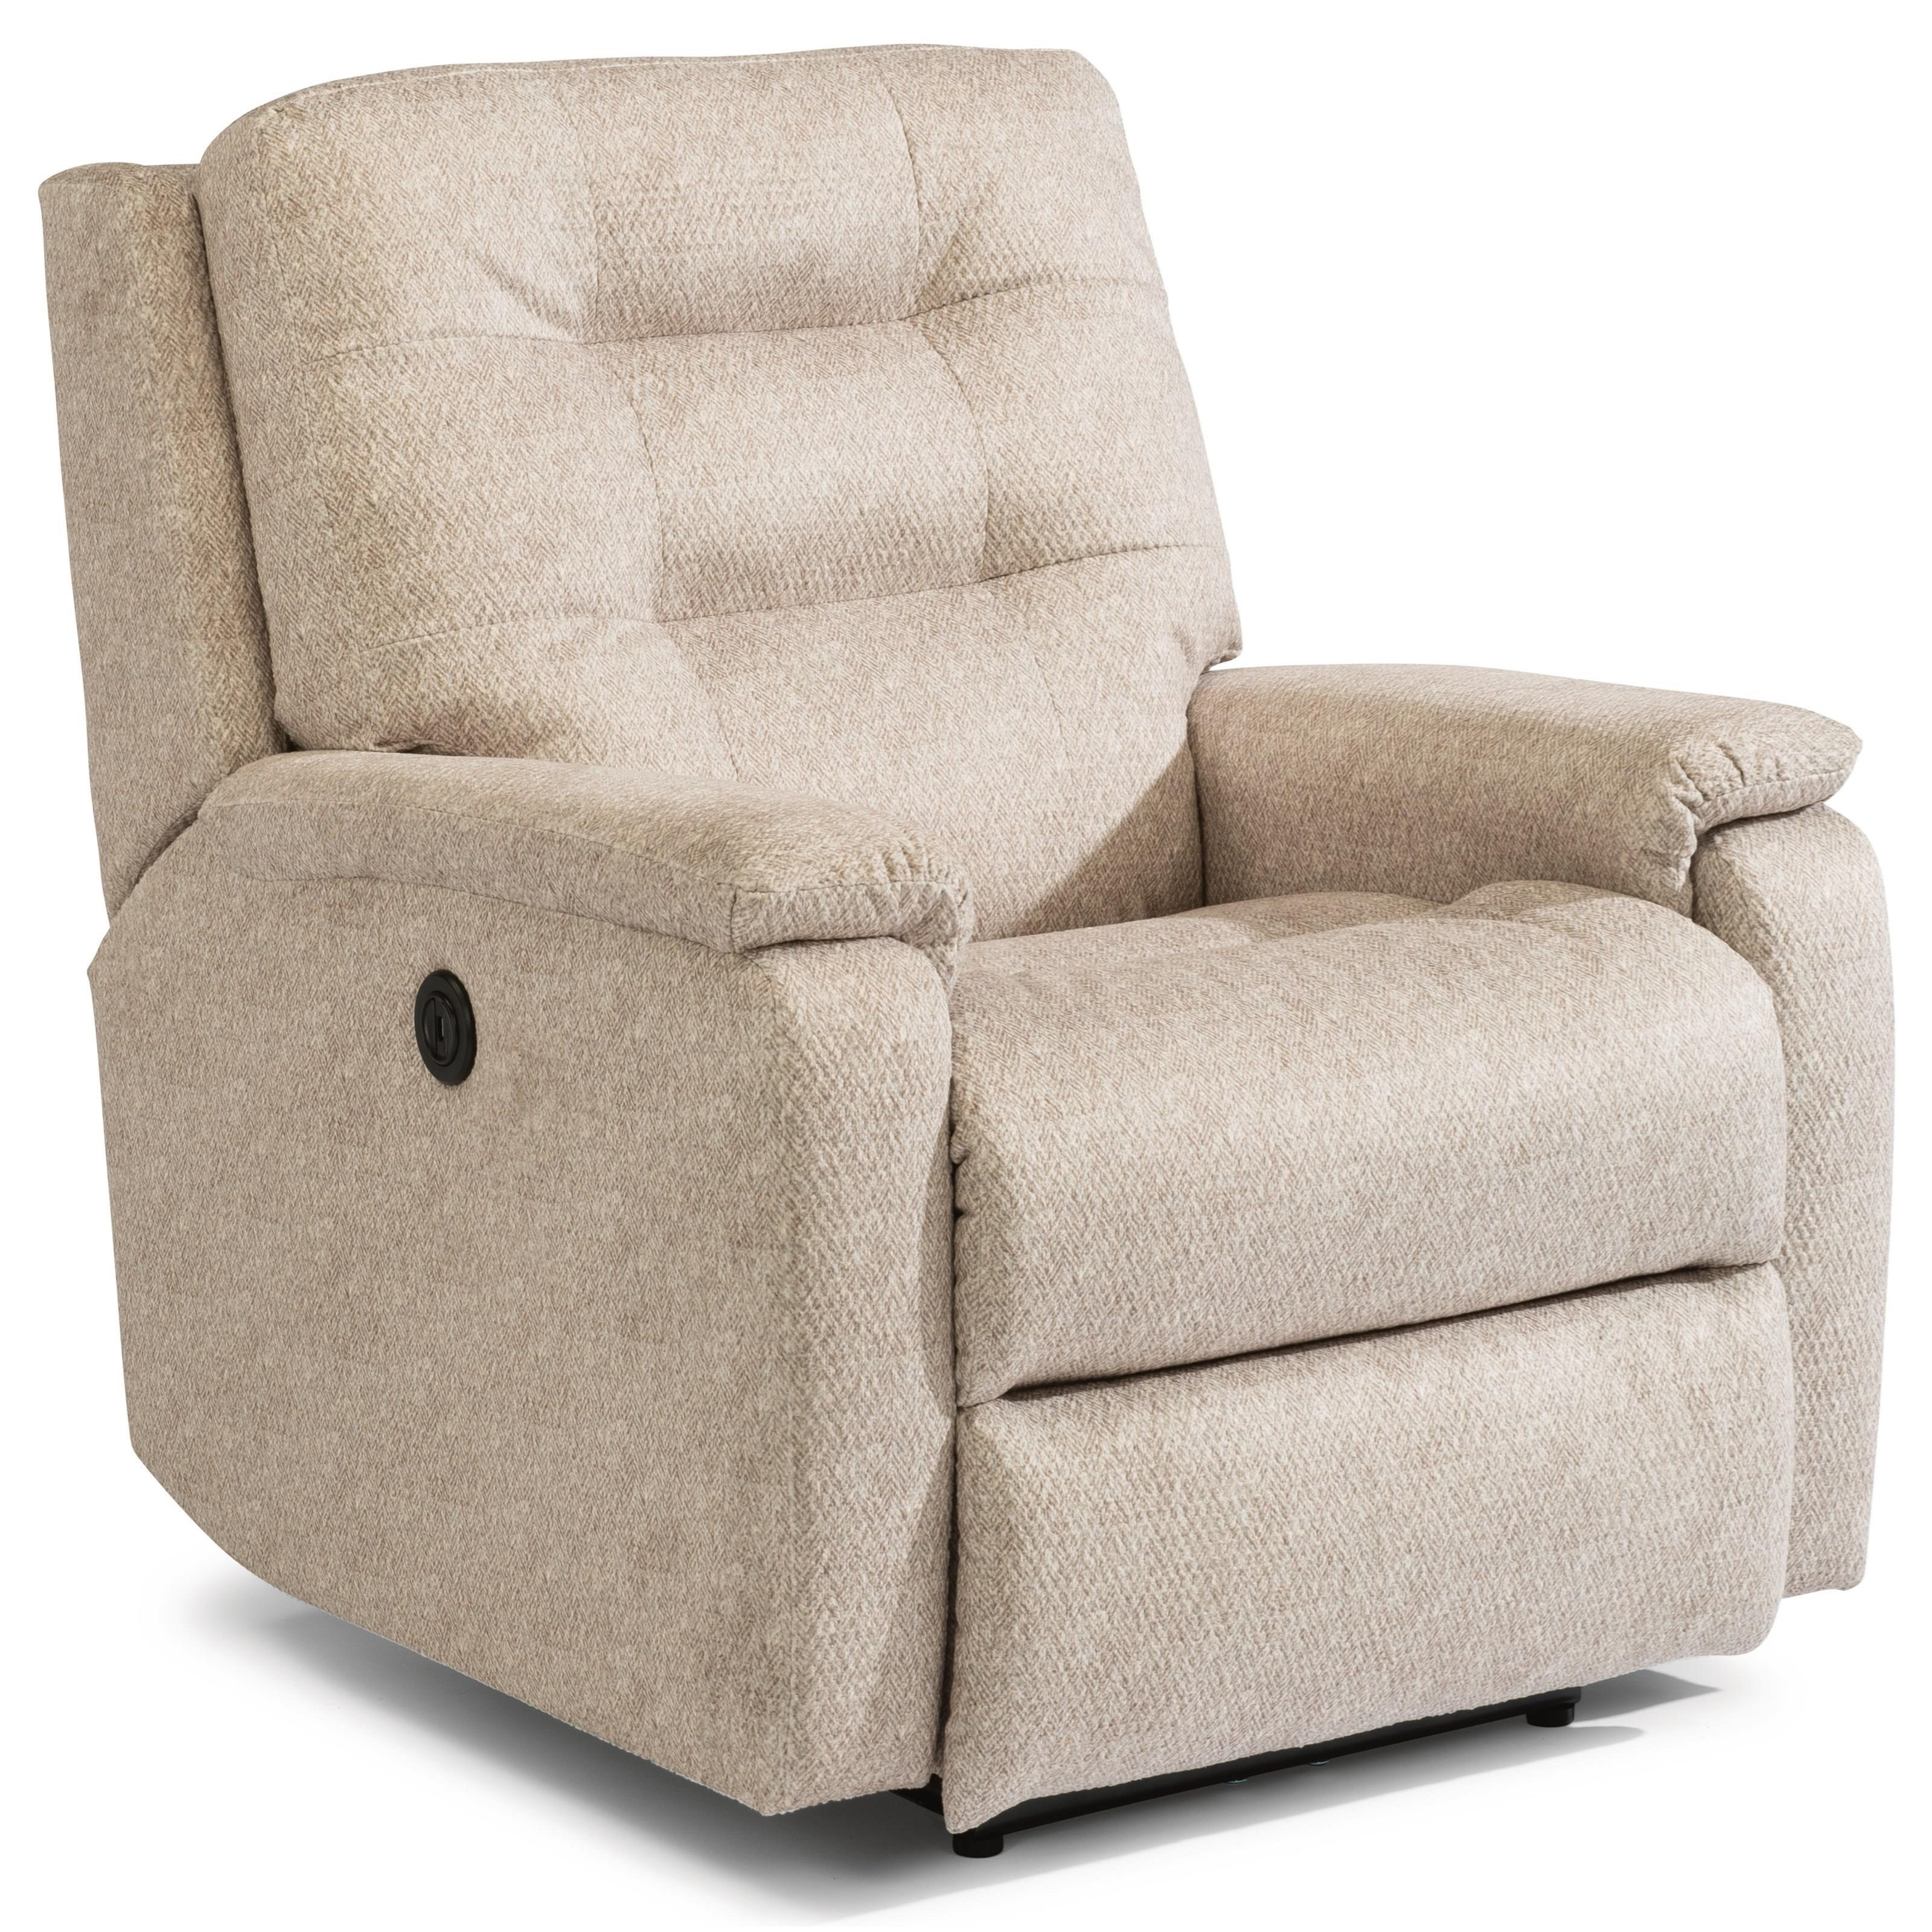 Caleb Power Rocking Recliner by Flexsteel at Steger's Furniture